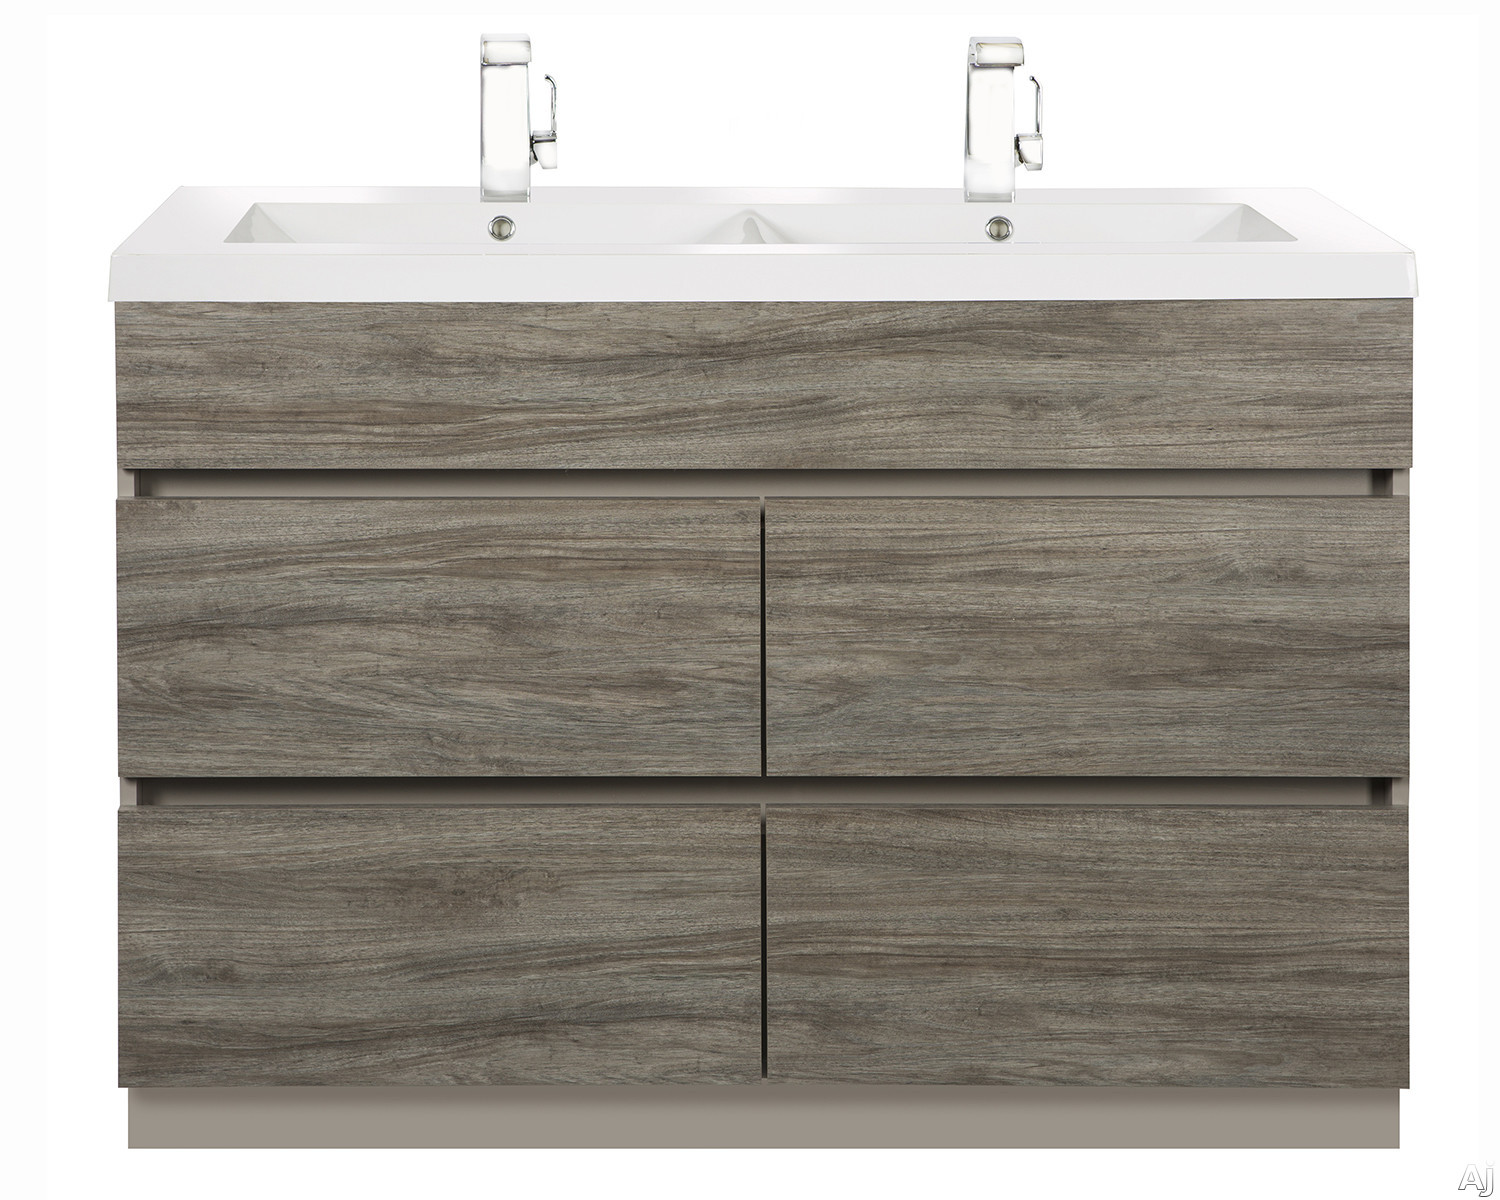 Picture of Cutler Kitchen  Bath Boardwalk BWSW48DB 48 Inch Double Bowl Vanity with Acrylic Top with Overflow 4 Soft Close Drawers Comfort Height and European Hardware Southwester